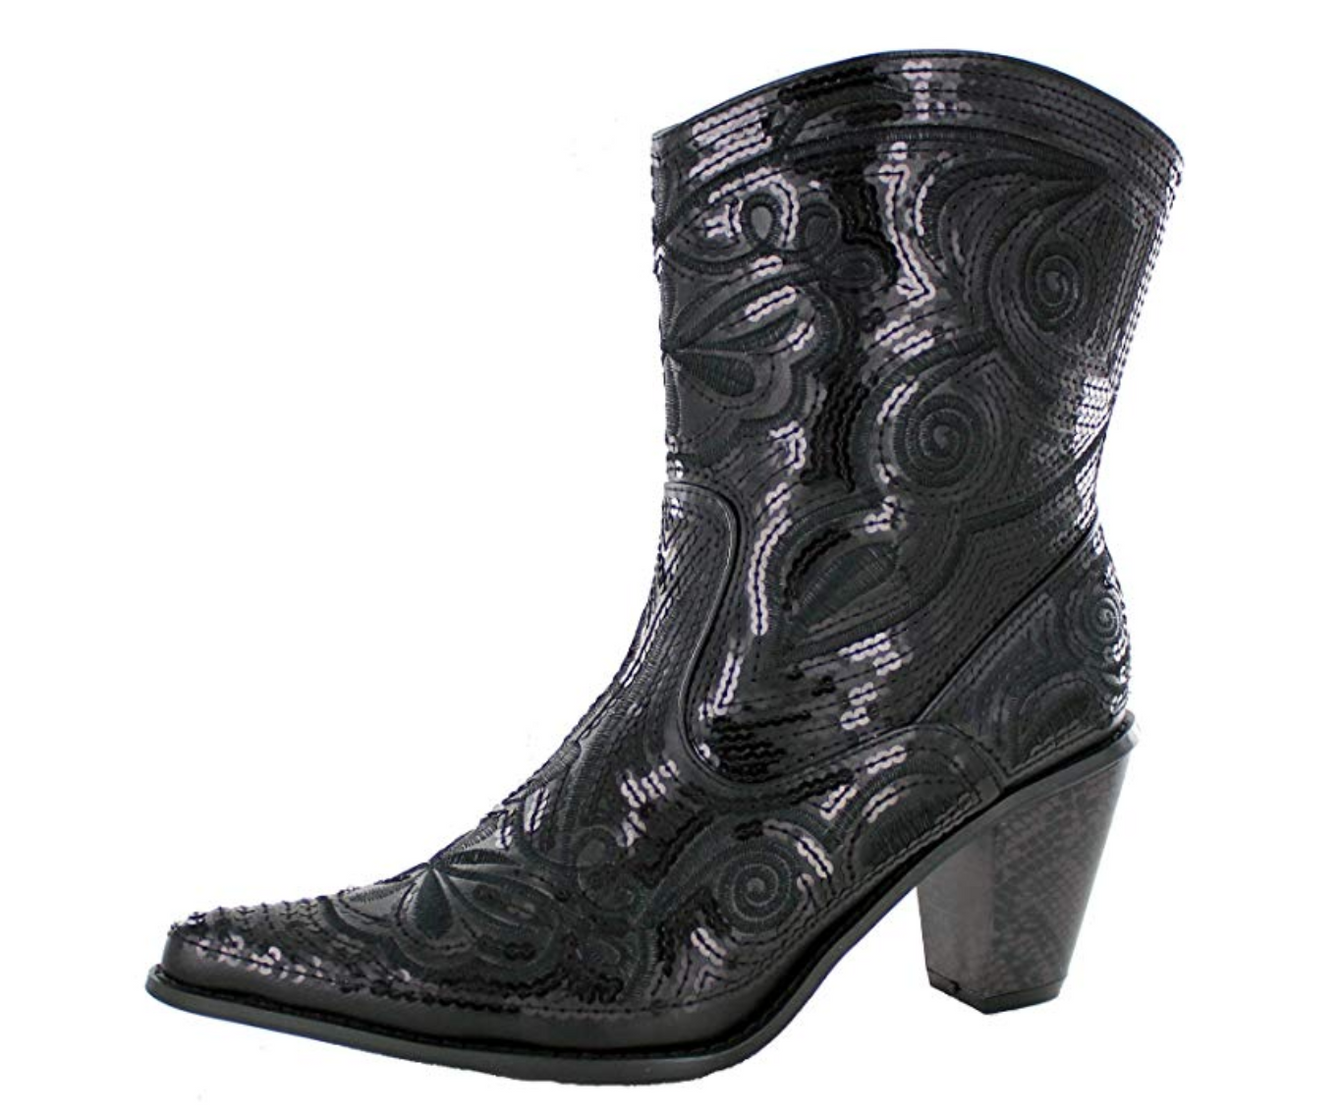 Helens Heart Bling Boots LB-0290-11 (6, Black)